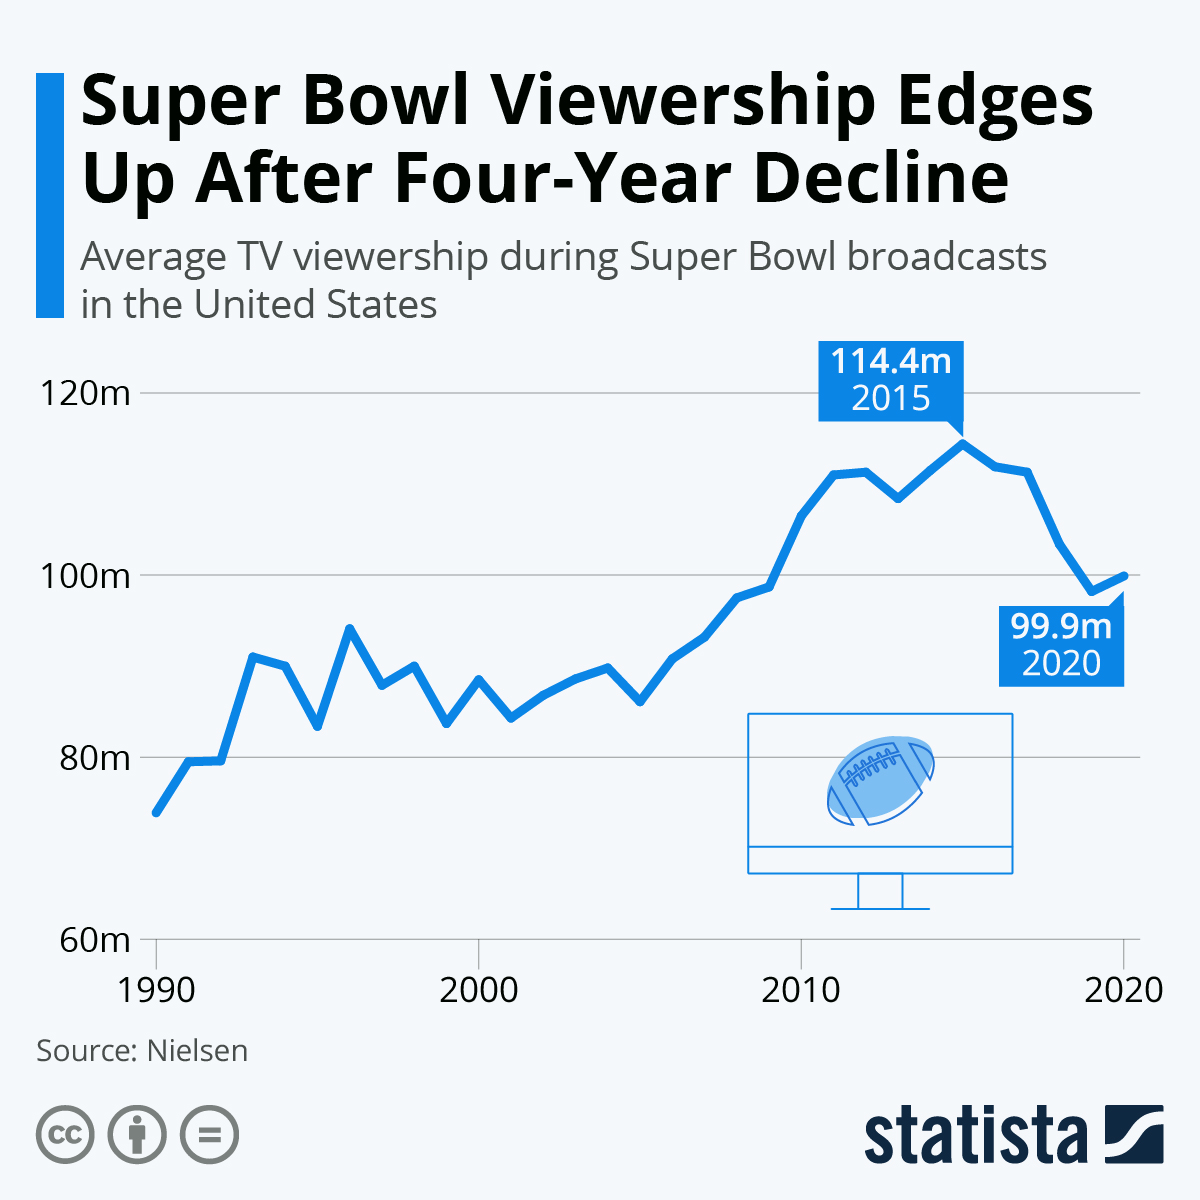 Super Bowl Viewers